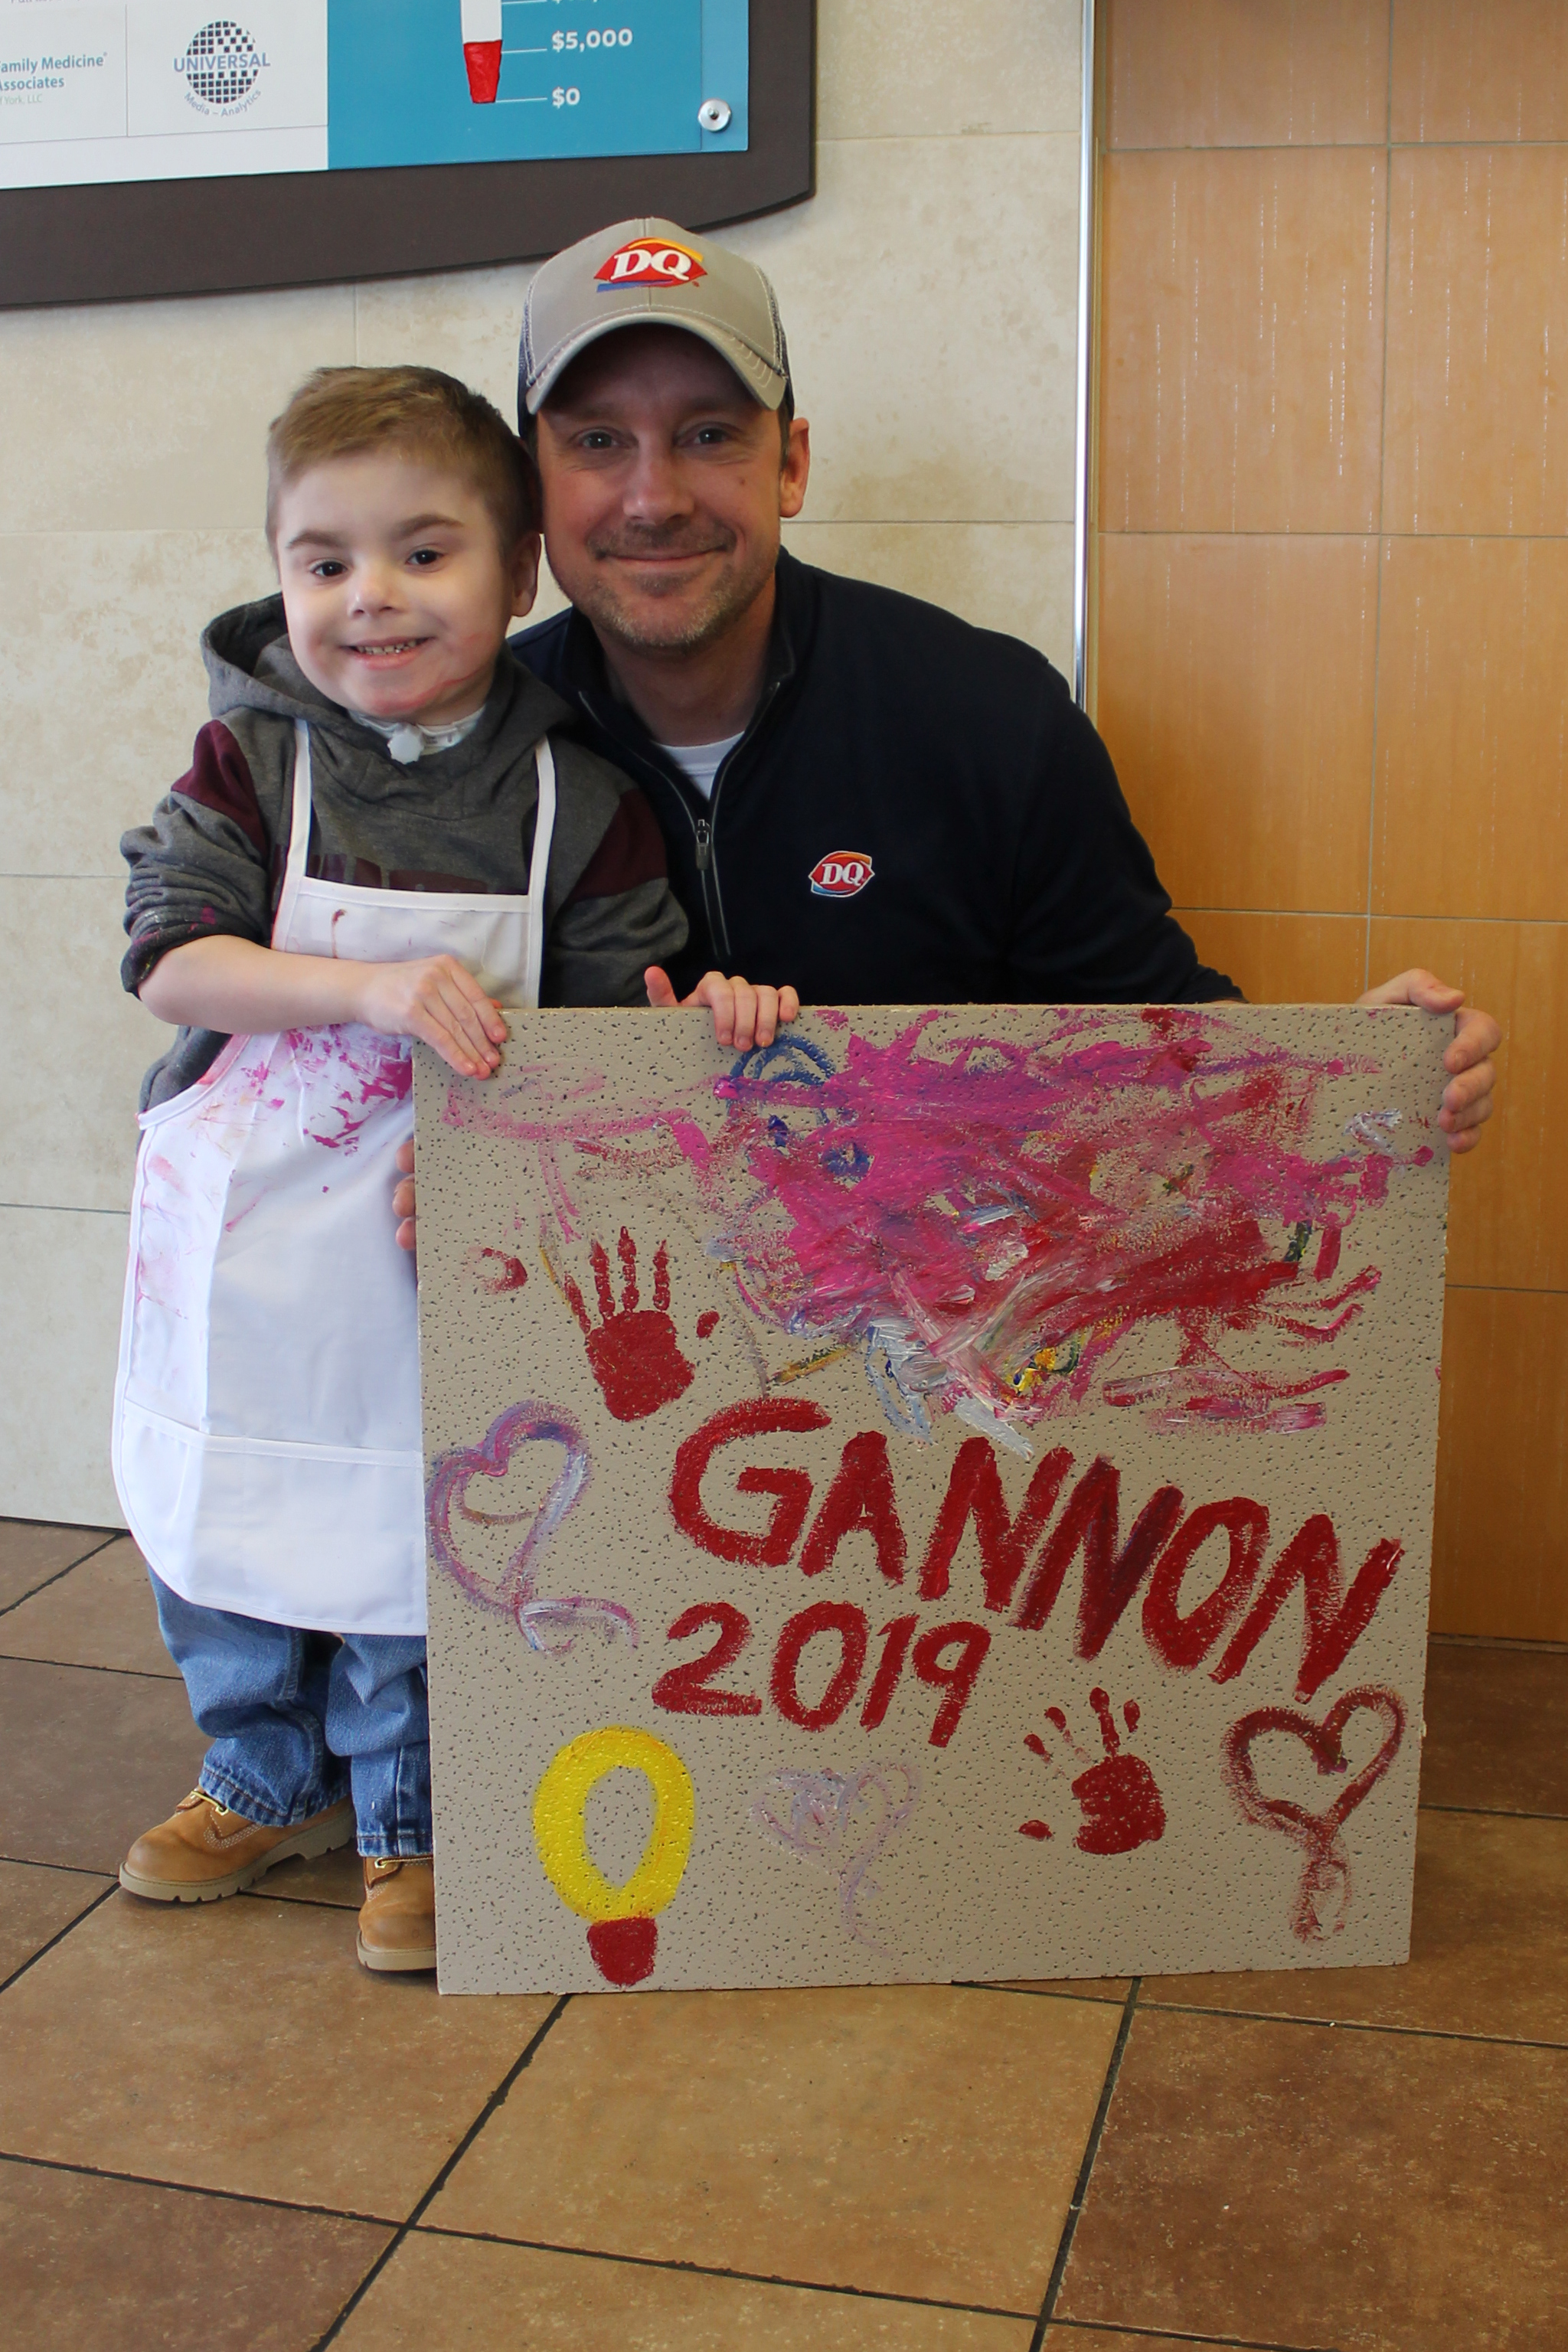 Gannon and John Miller at DQ Roosevelt. Gannon just finished painting his ceiling tile as the official DQ Roosevelt Miracle of 2019!